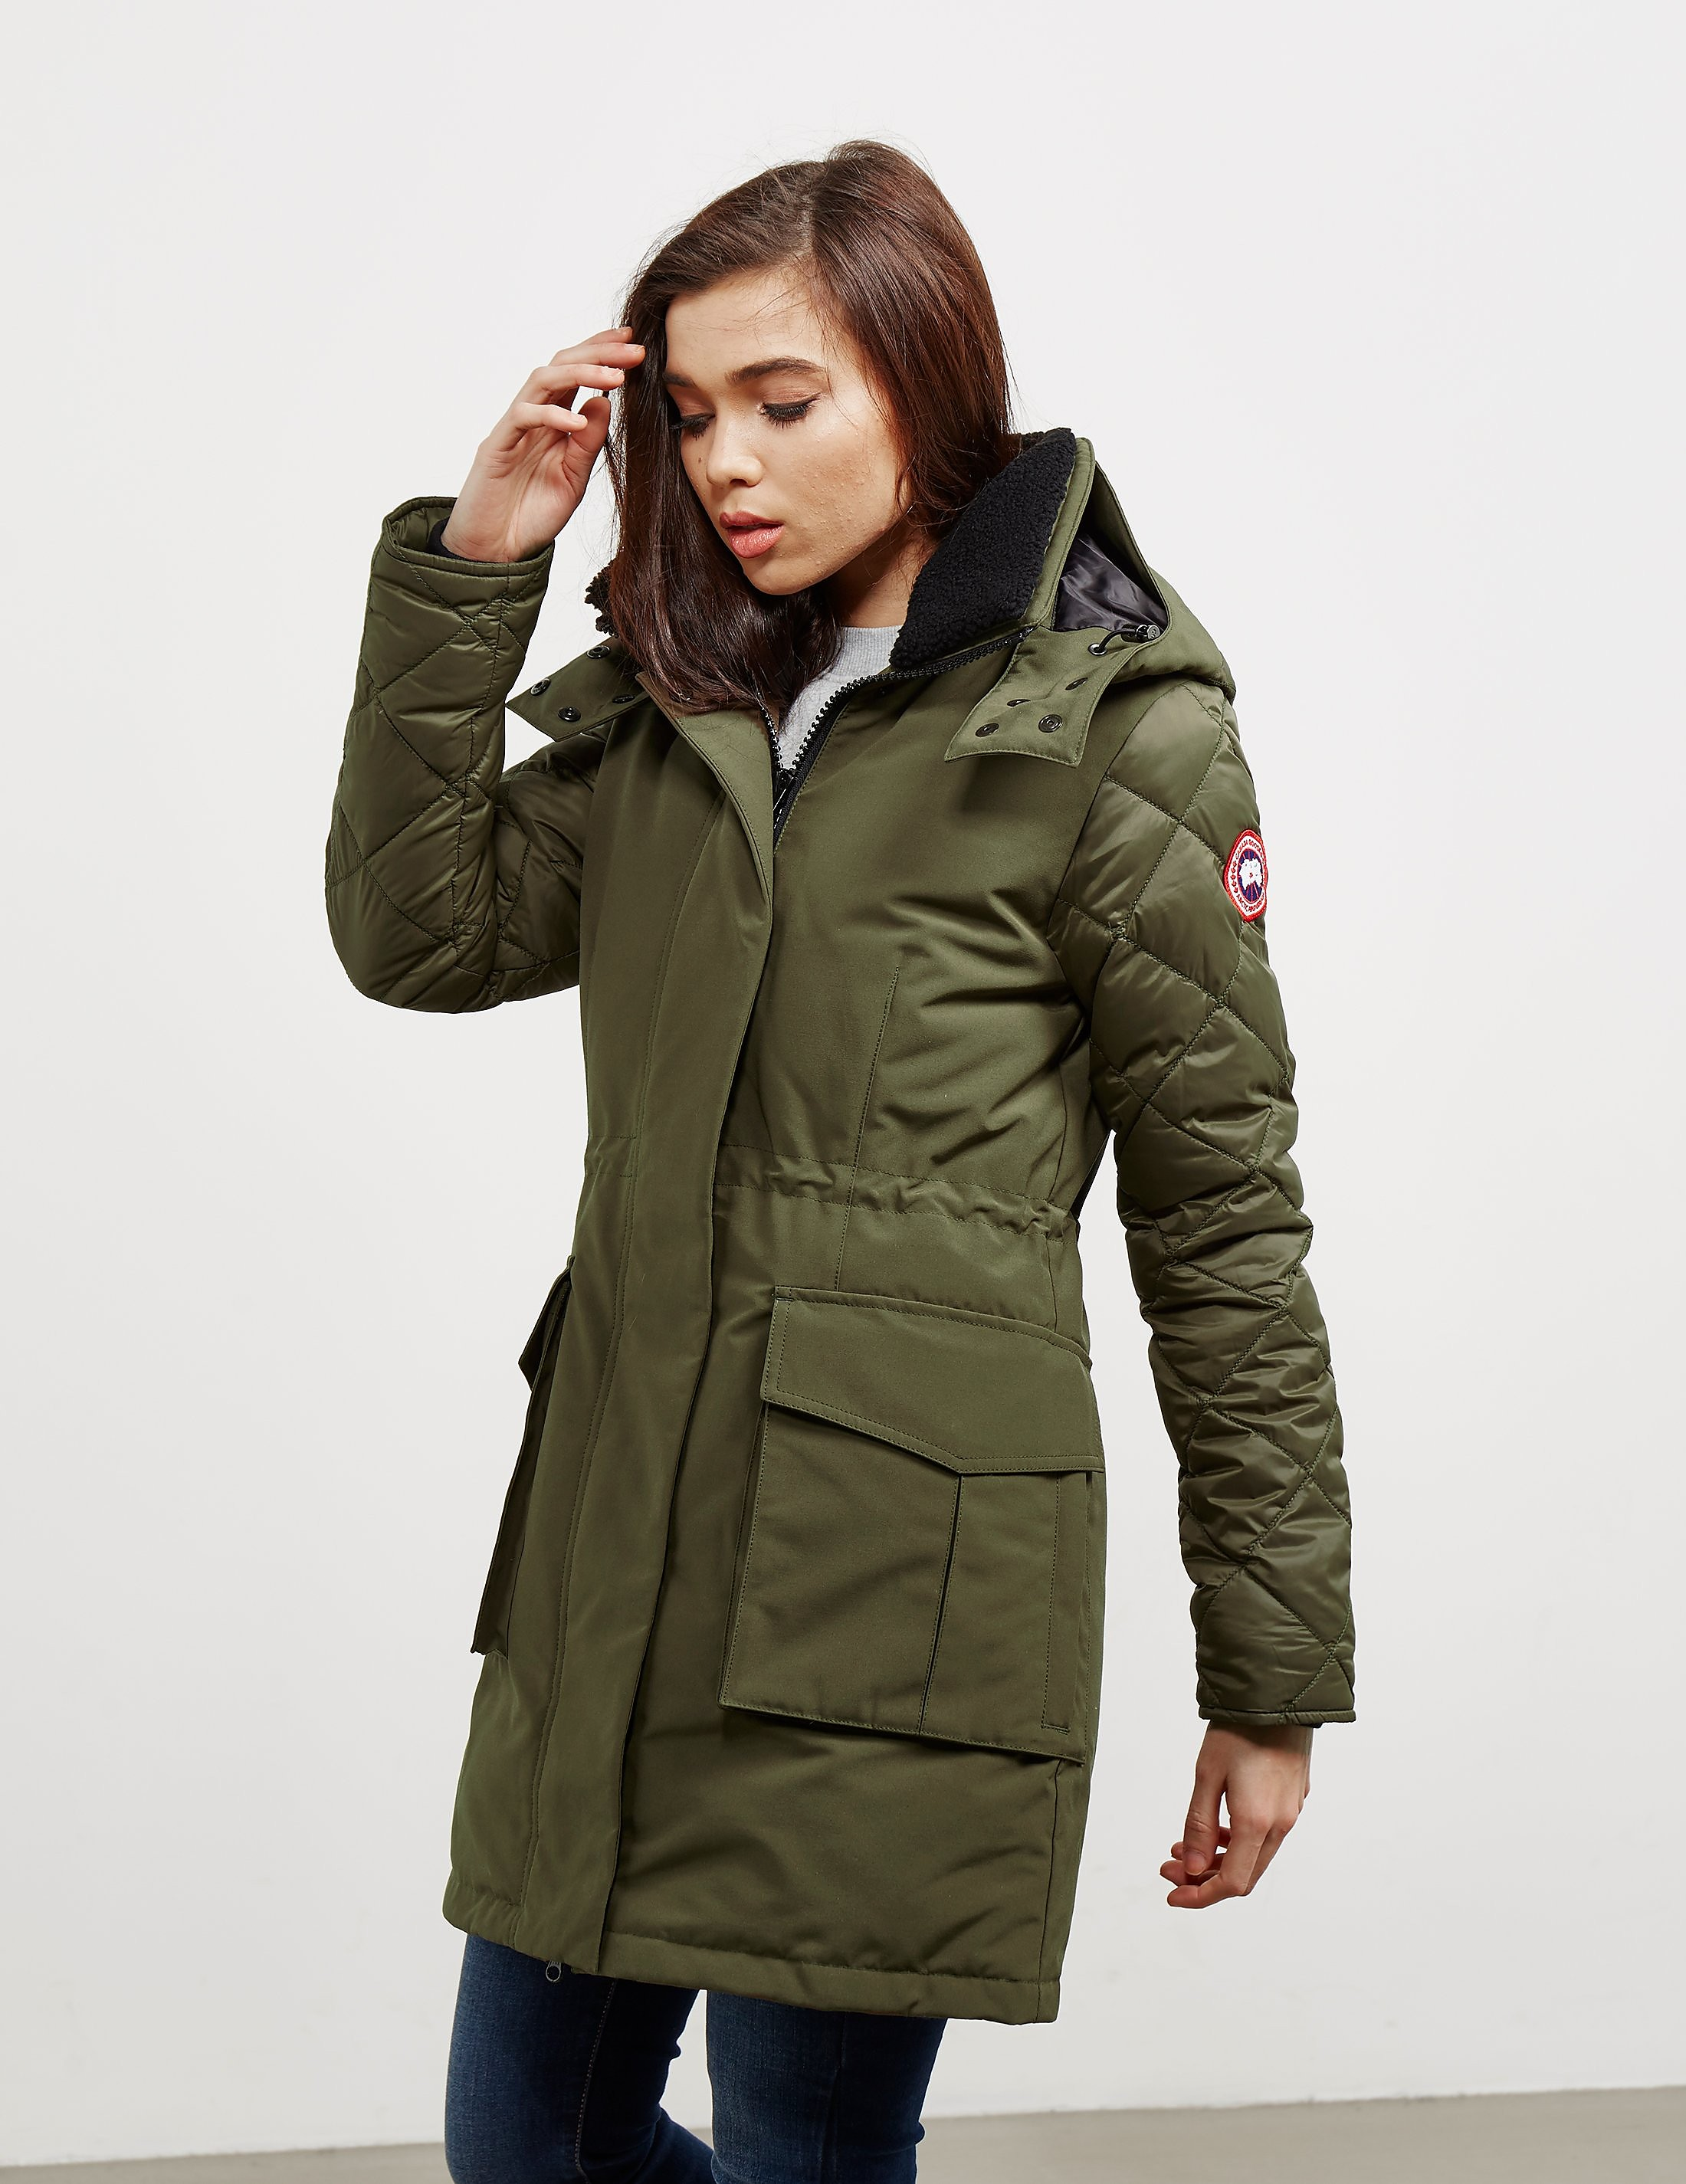 Canada Goose Elwin Padded Parka Jacket - Online Exclusive